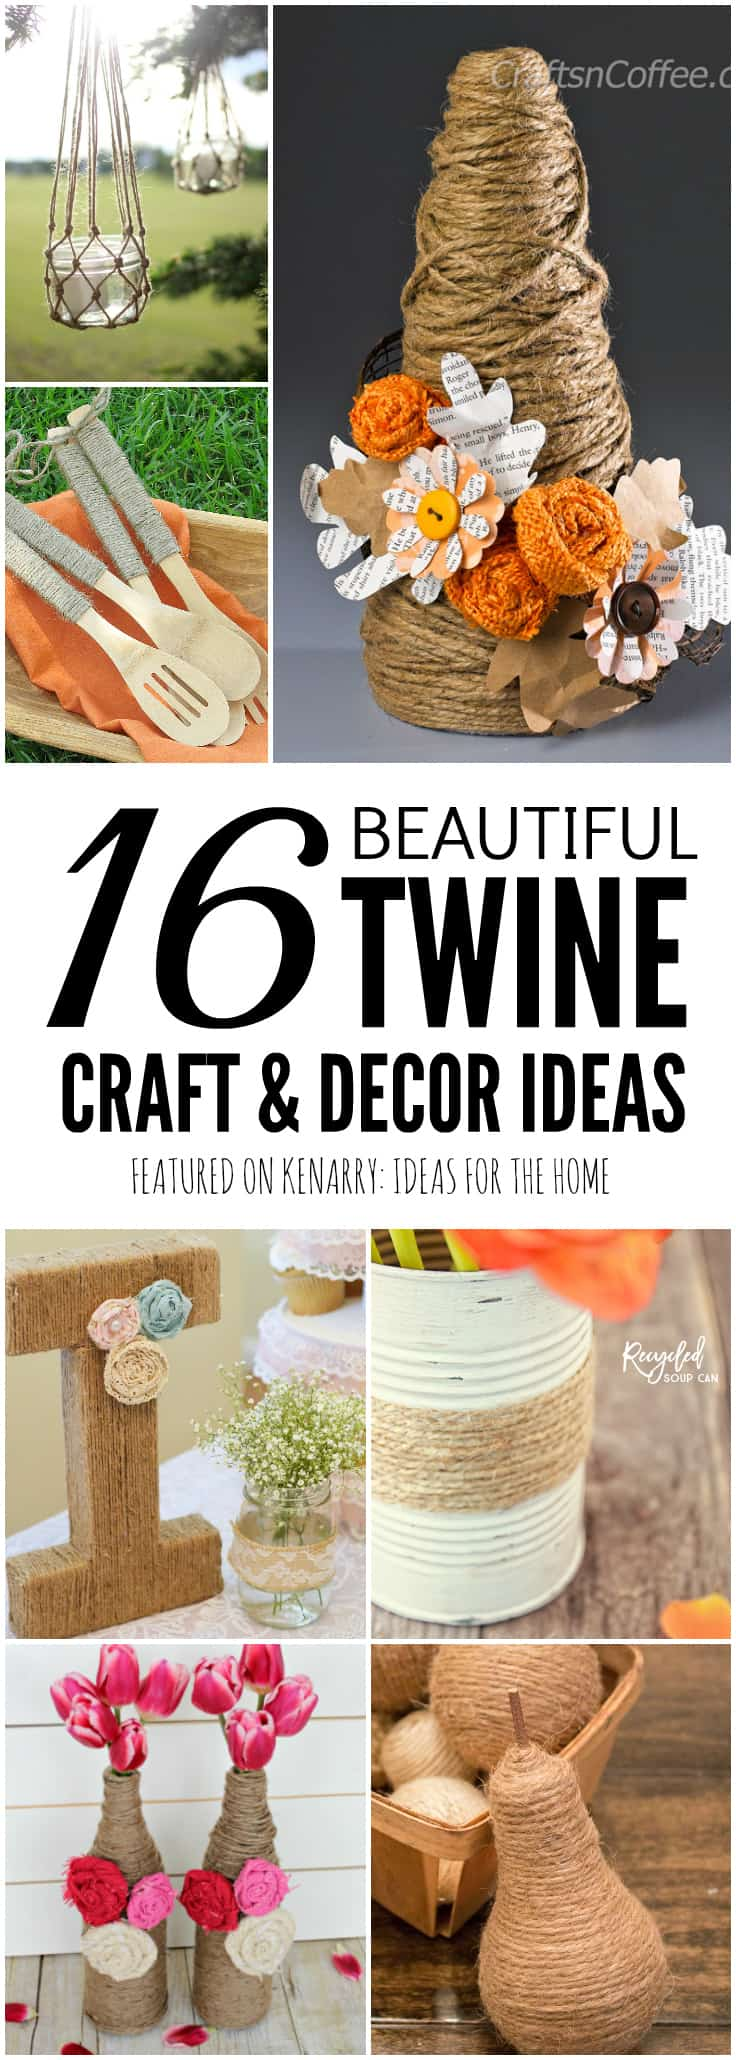 This collection of beautiful jute craft ideas includes 16 DIY projects you can make with burlap twine. If you love farmhouse style decor, you've got to check out these fun crafts.